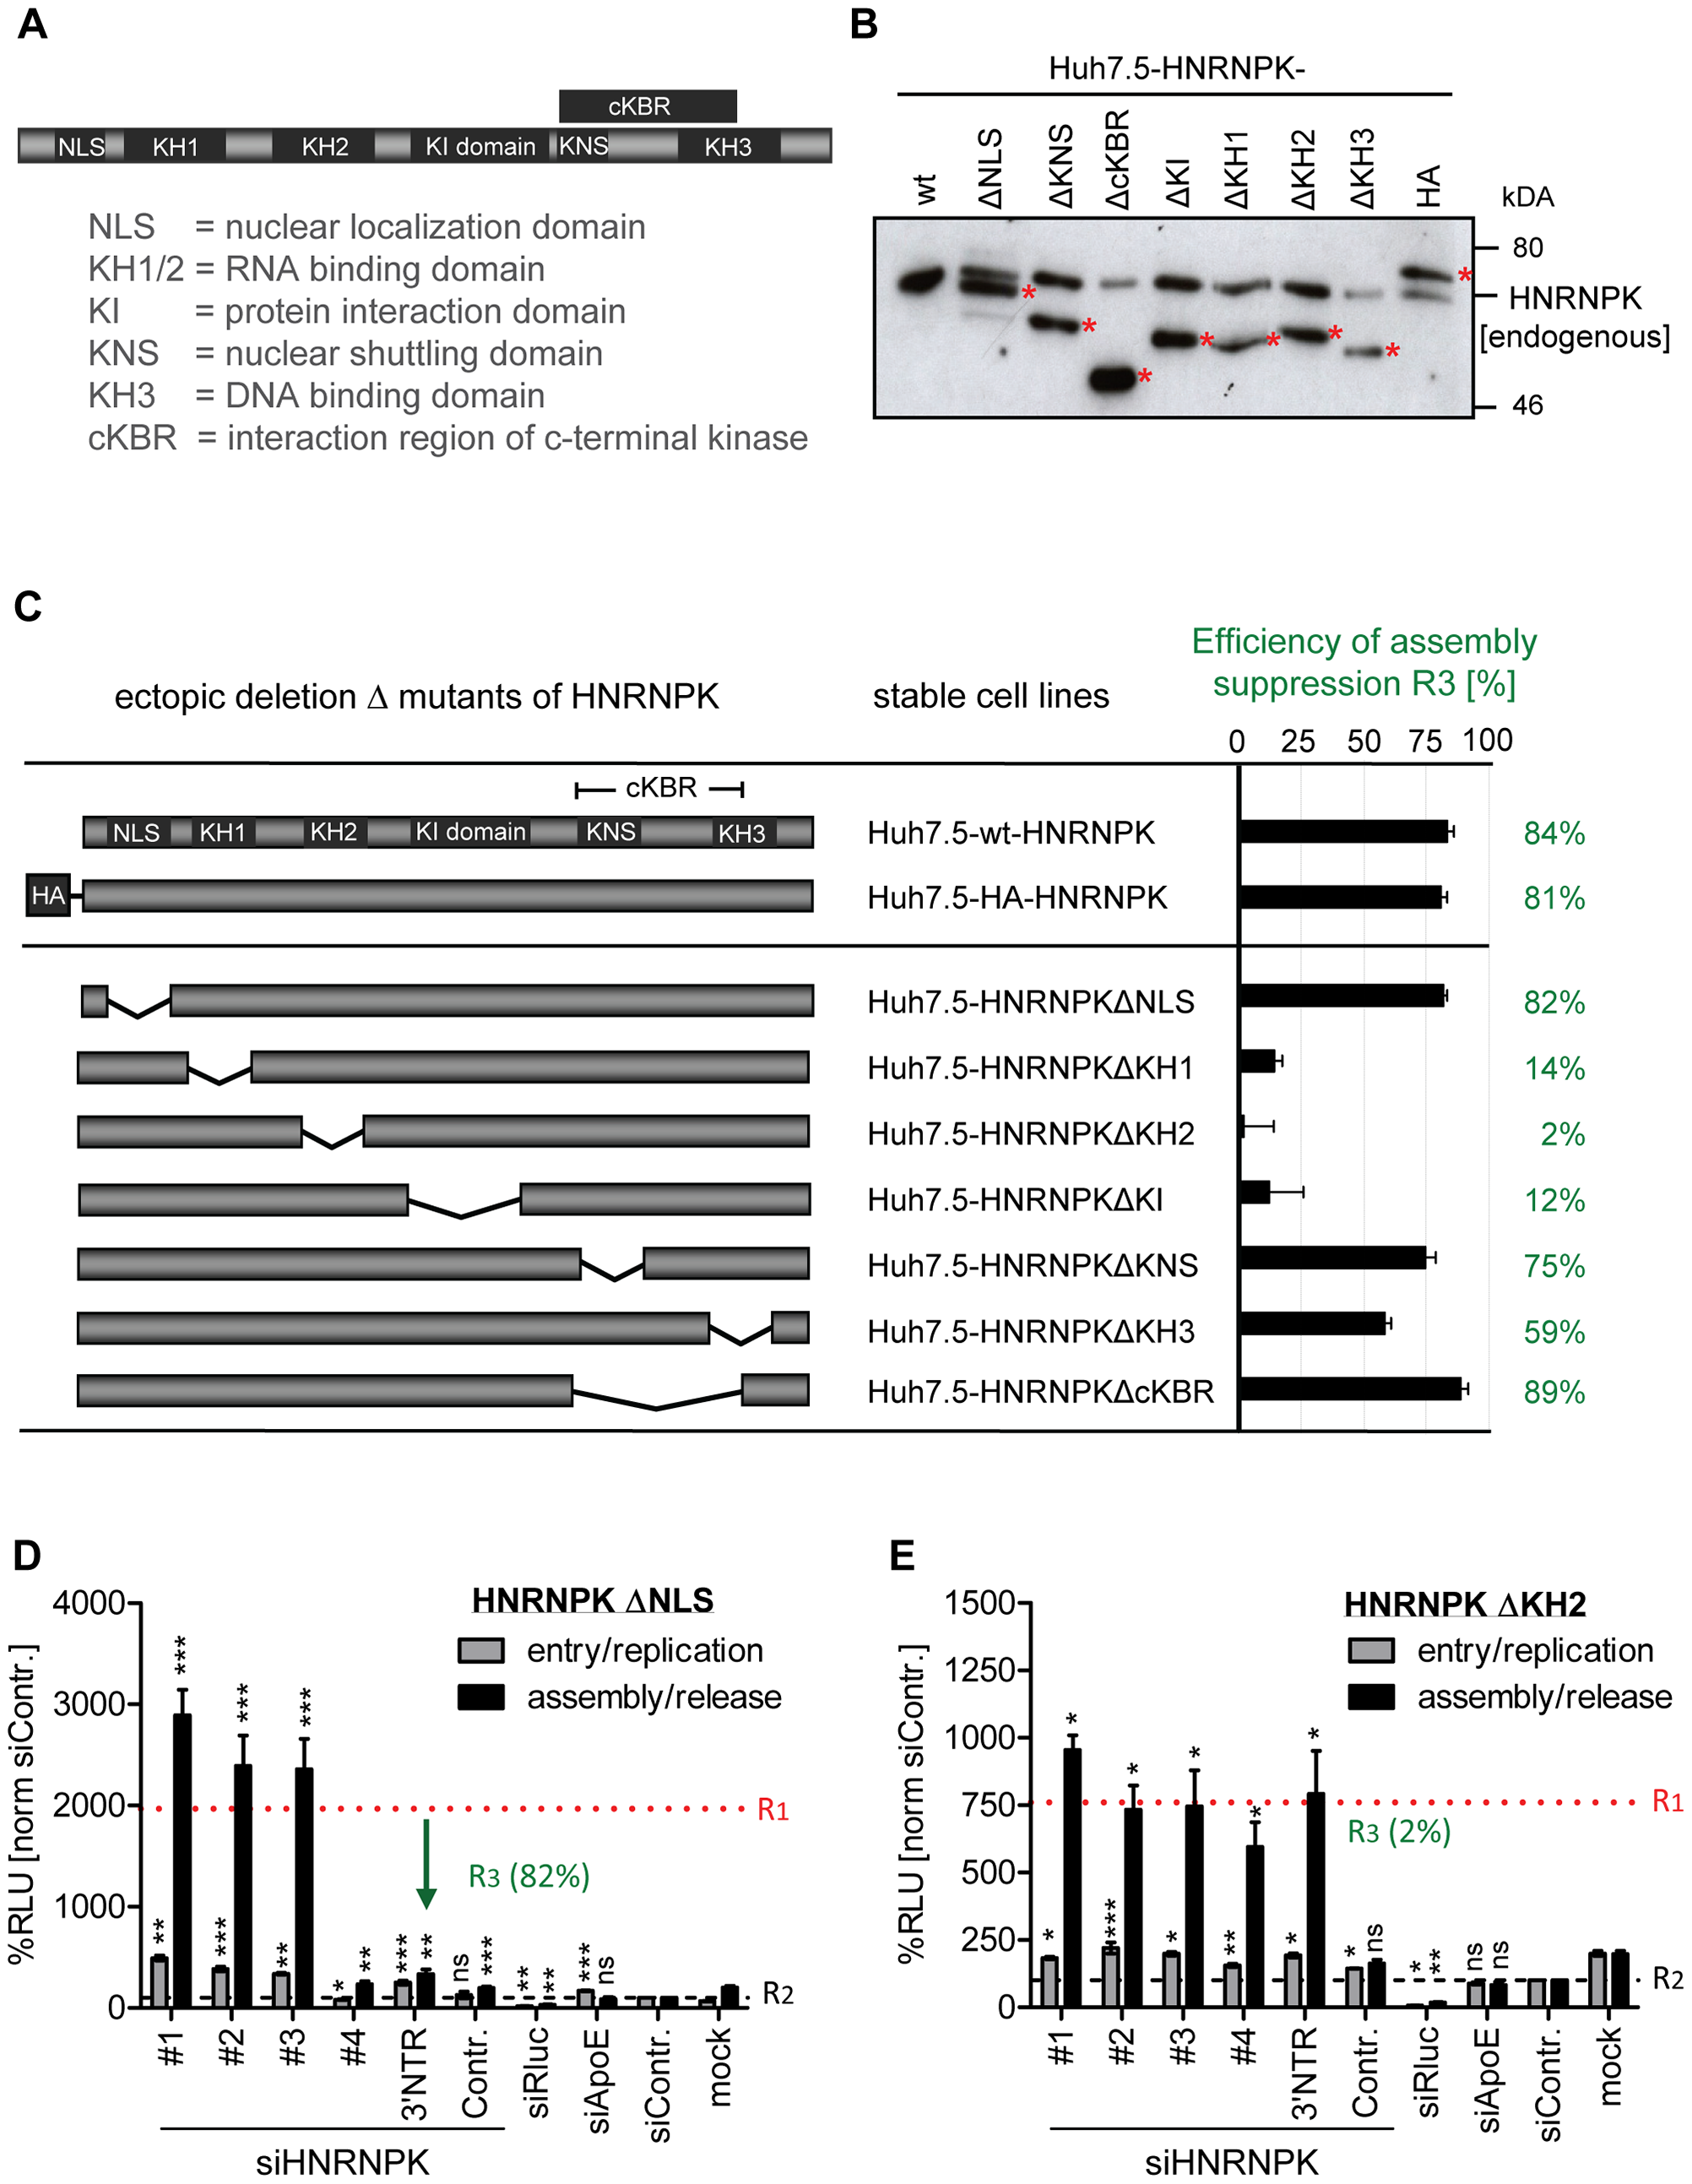 RNA and protein binding domains of HNRNPK are essential for restriction of HCV particle production.